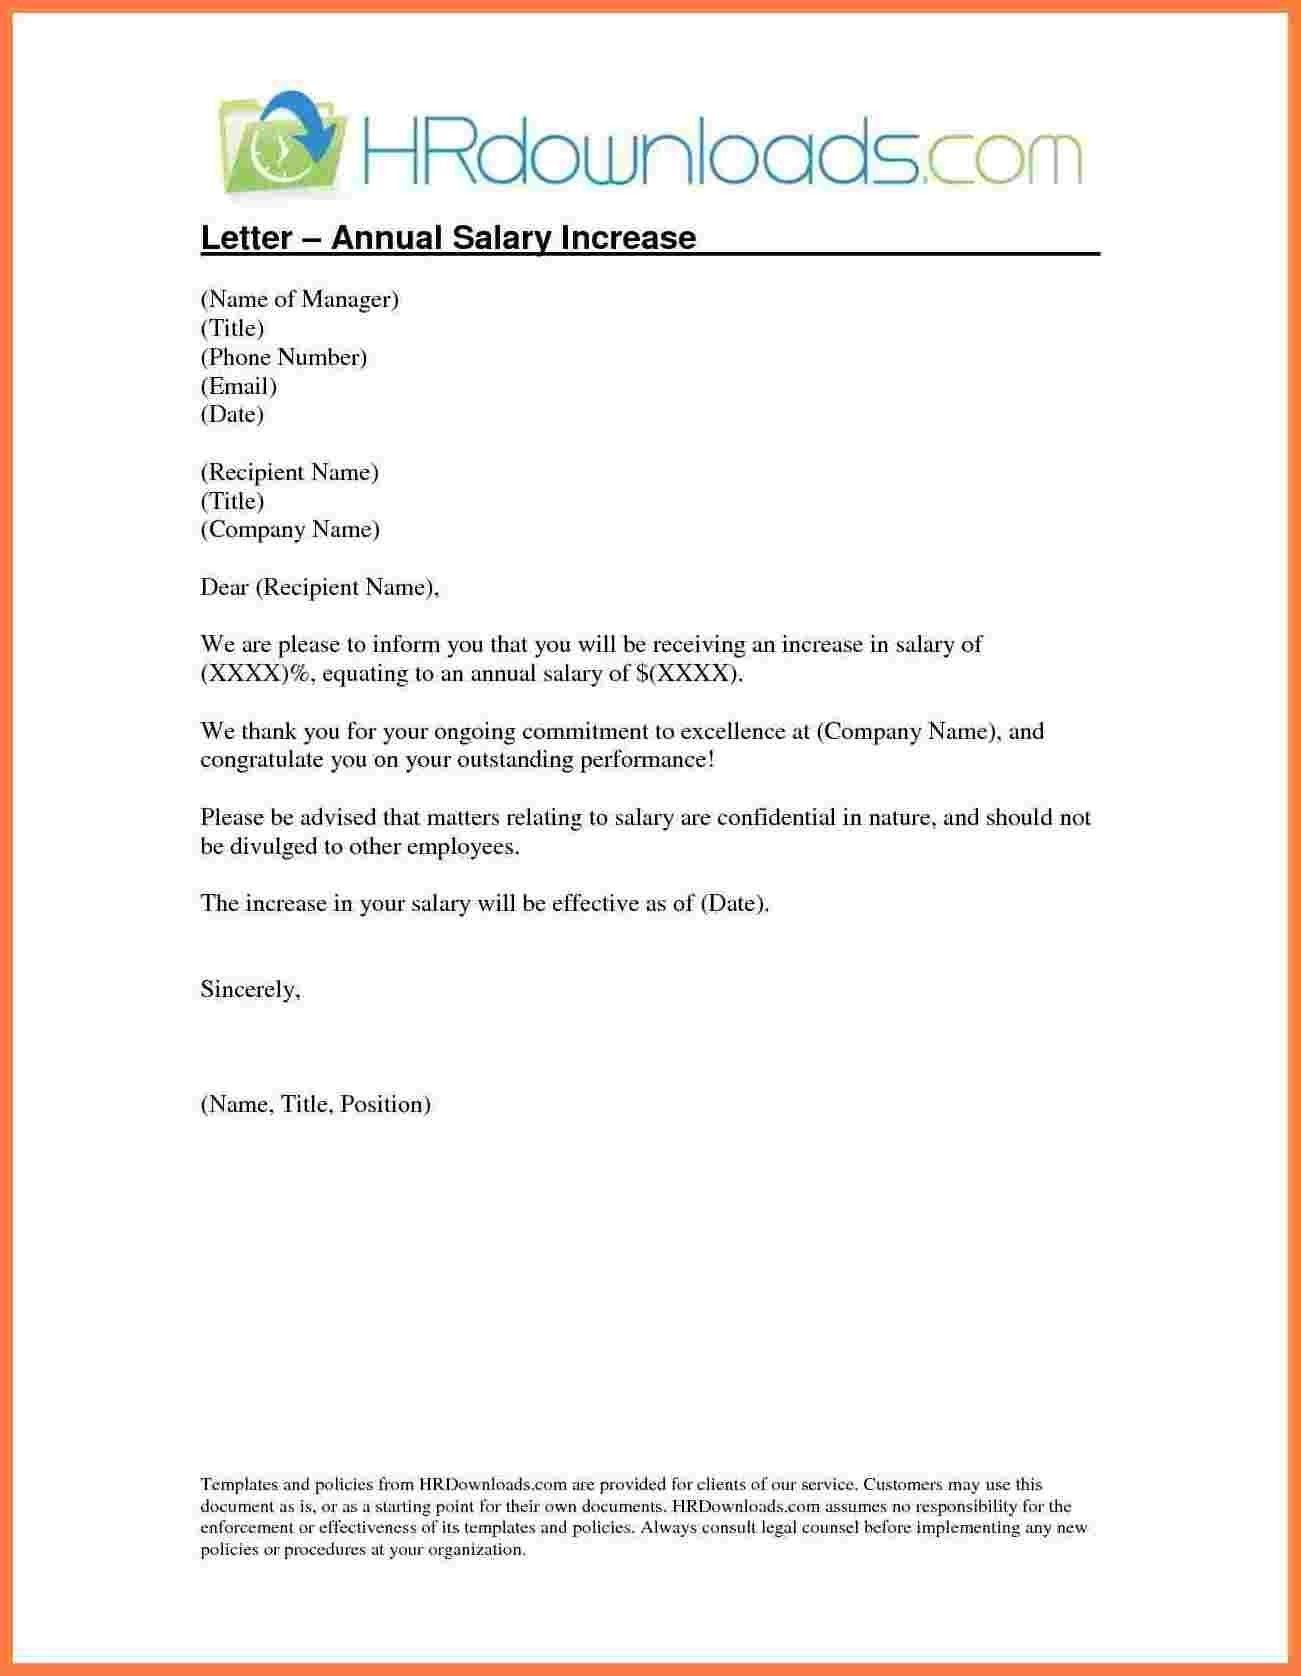 005 Singular Salary Increase Letter Template Idea  From Employer To Employee Australia No ForFull